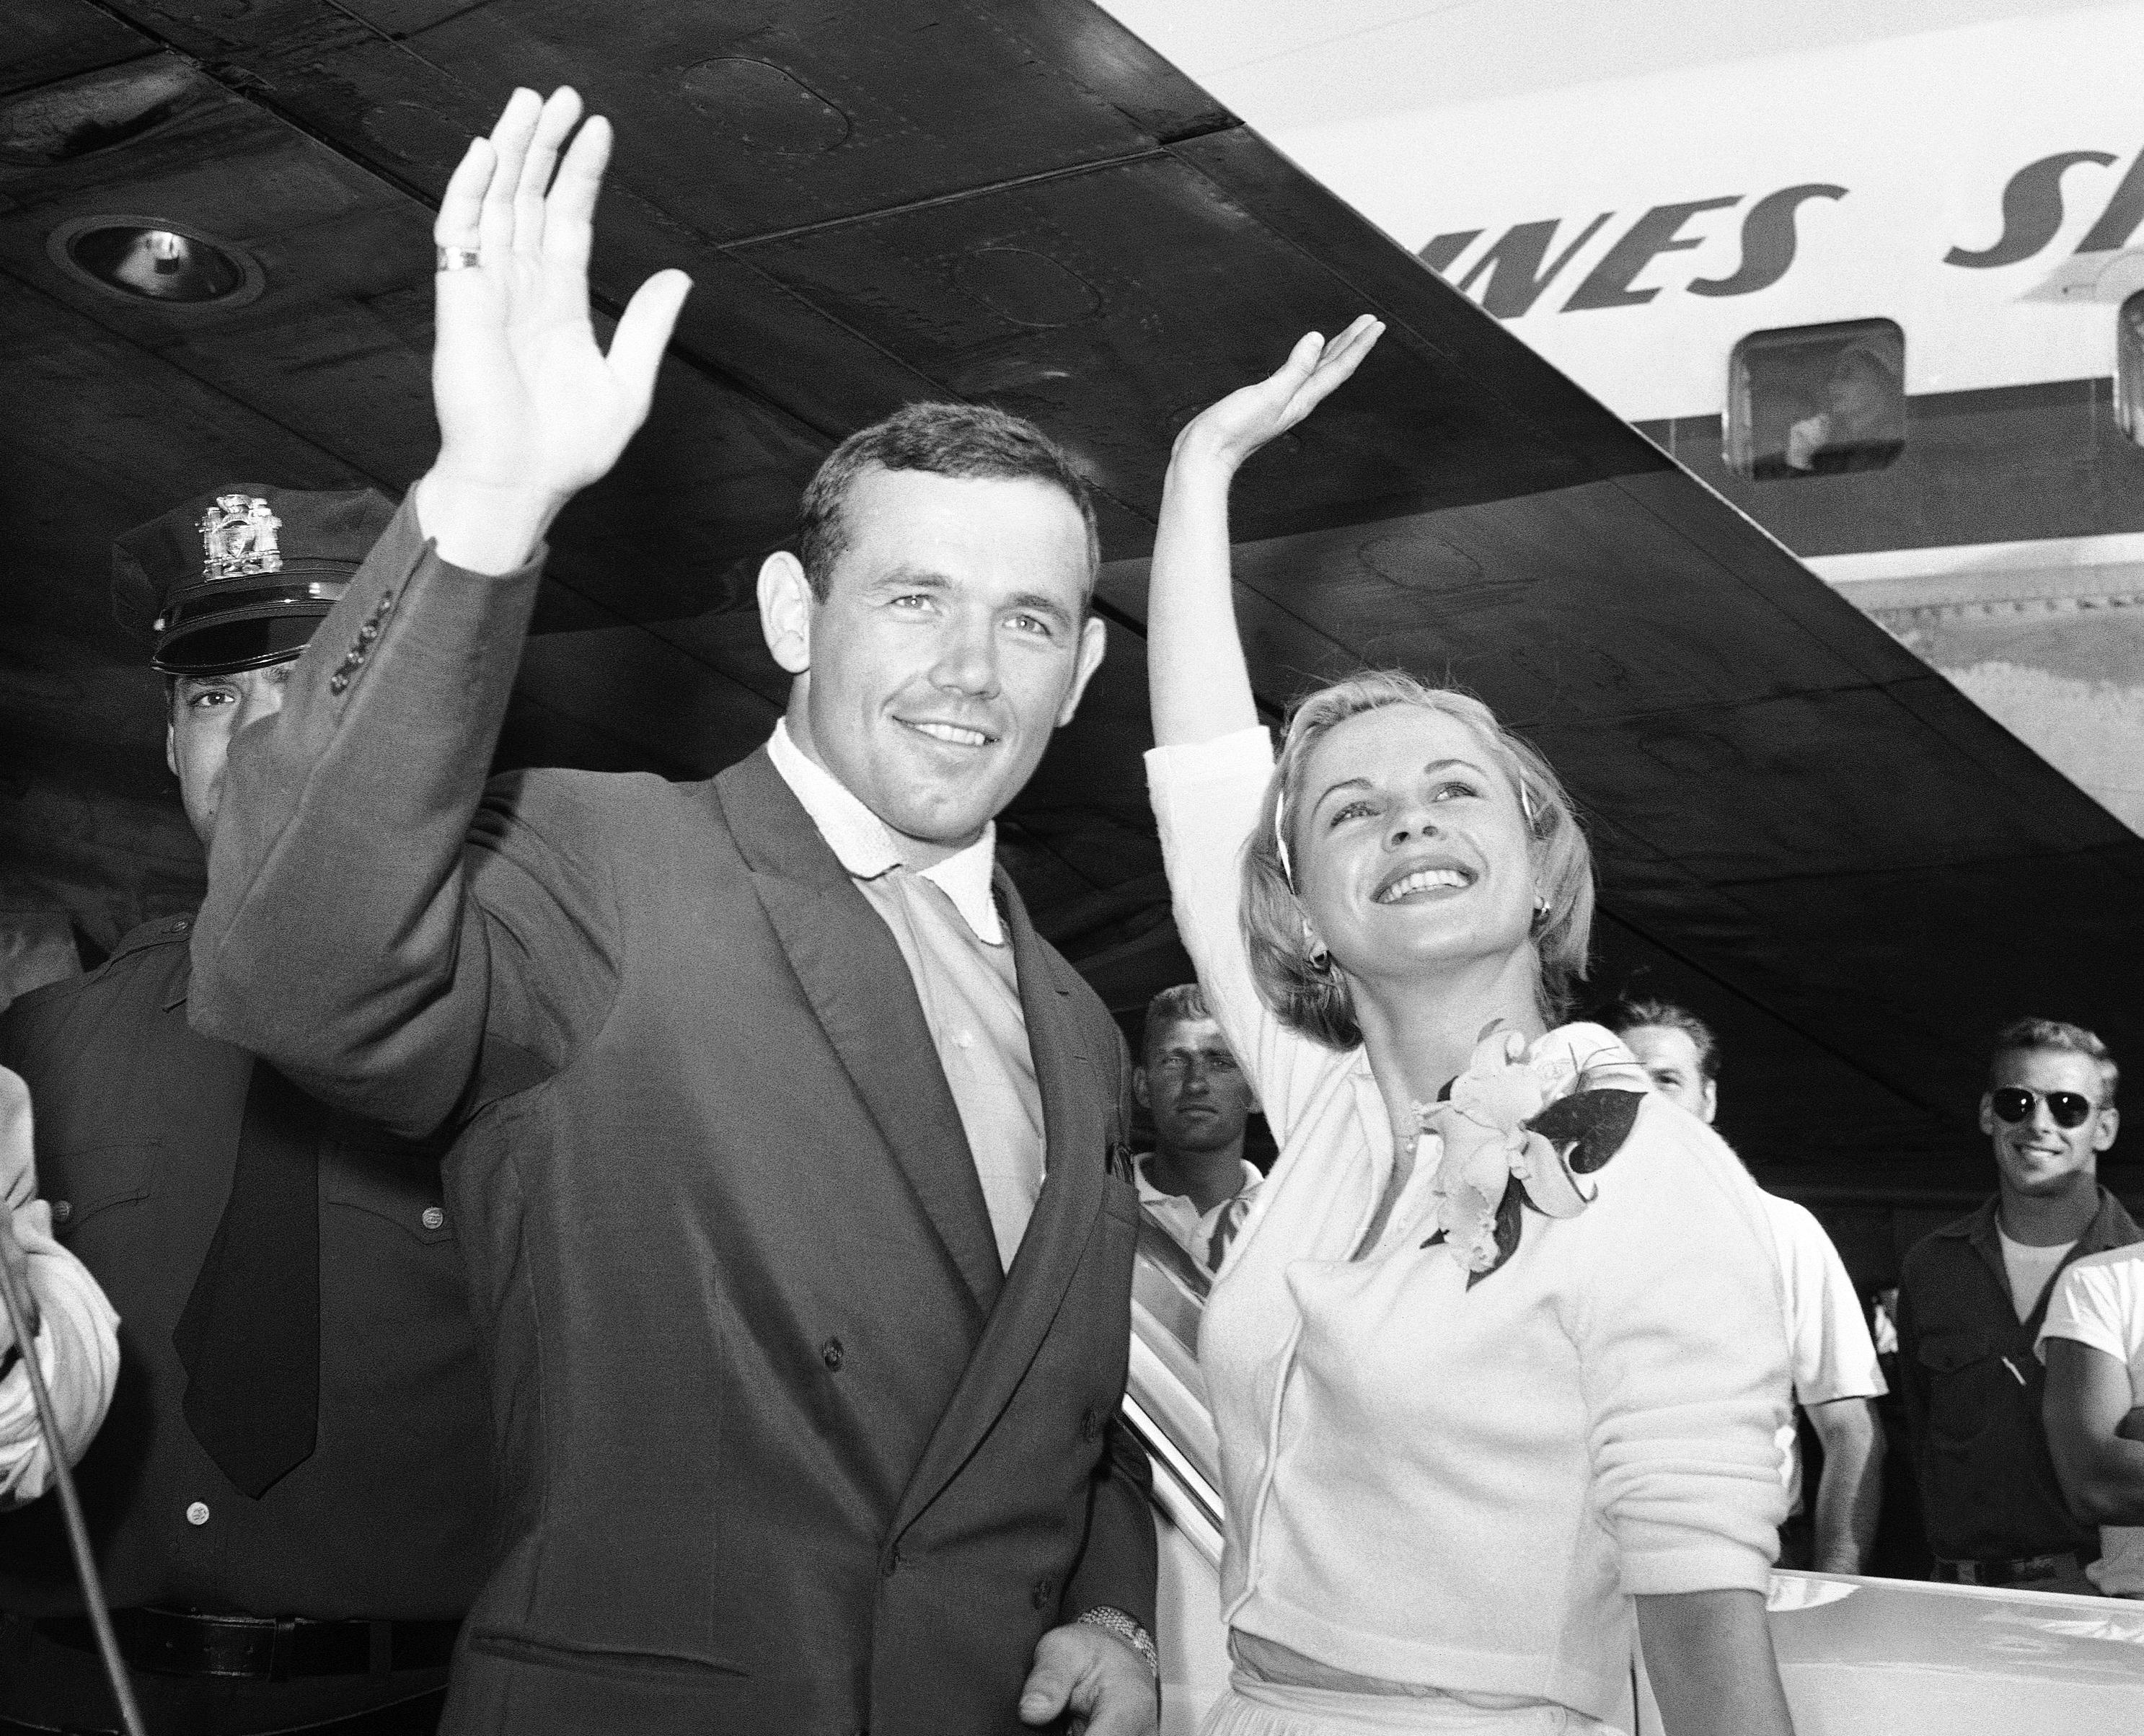 FILE - In this July 3, 1959 file photo, Swedish actress Bibi Andersson, right, and Sweden's Ingemar Johansson wave for the photographers at New York's Idlewild Airport.(AP Photo/Hans von Nolde, File)